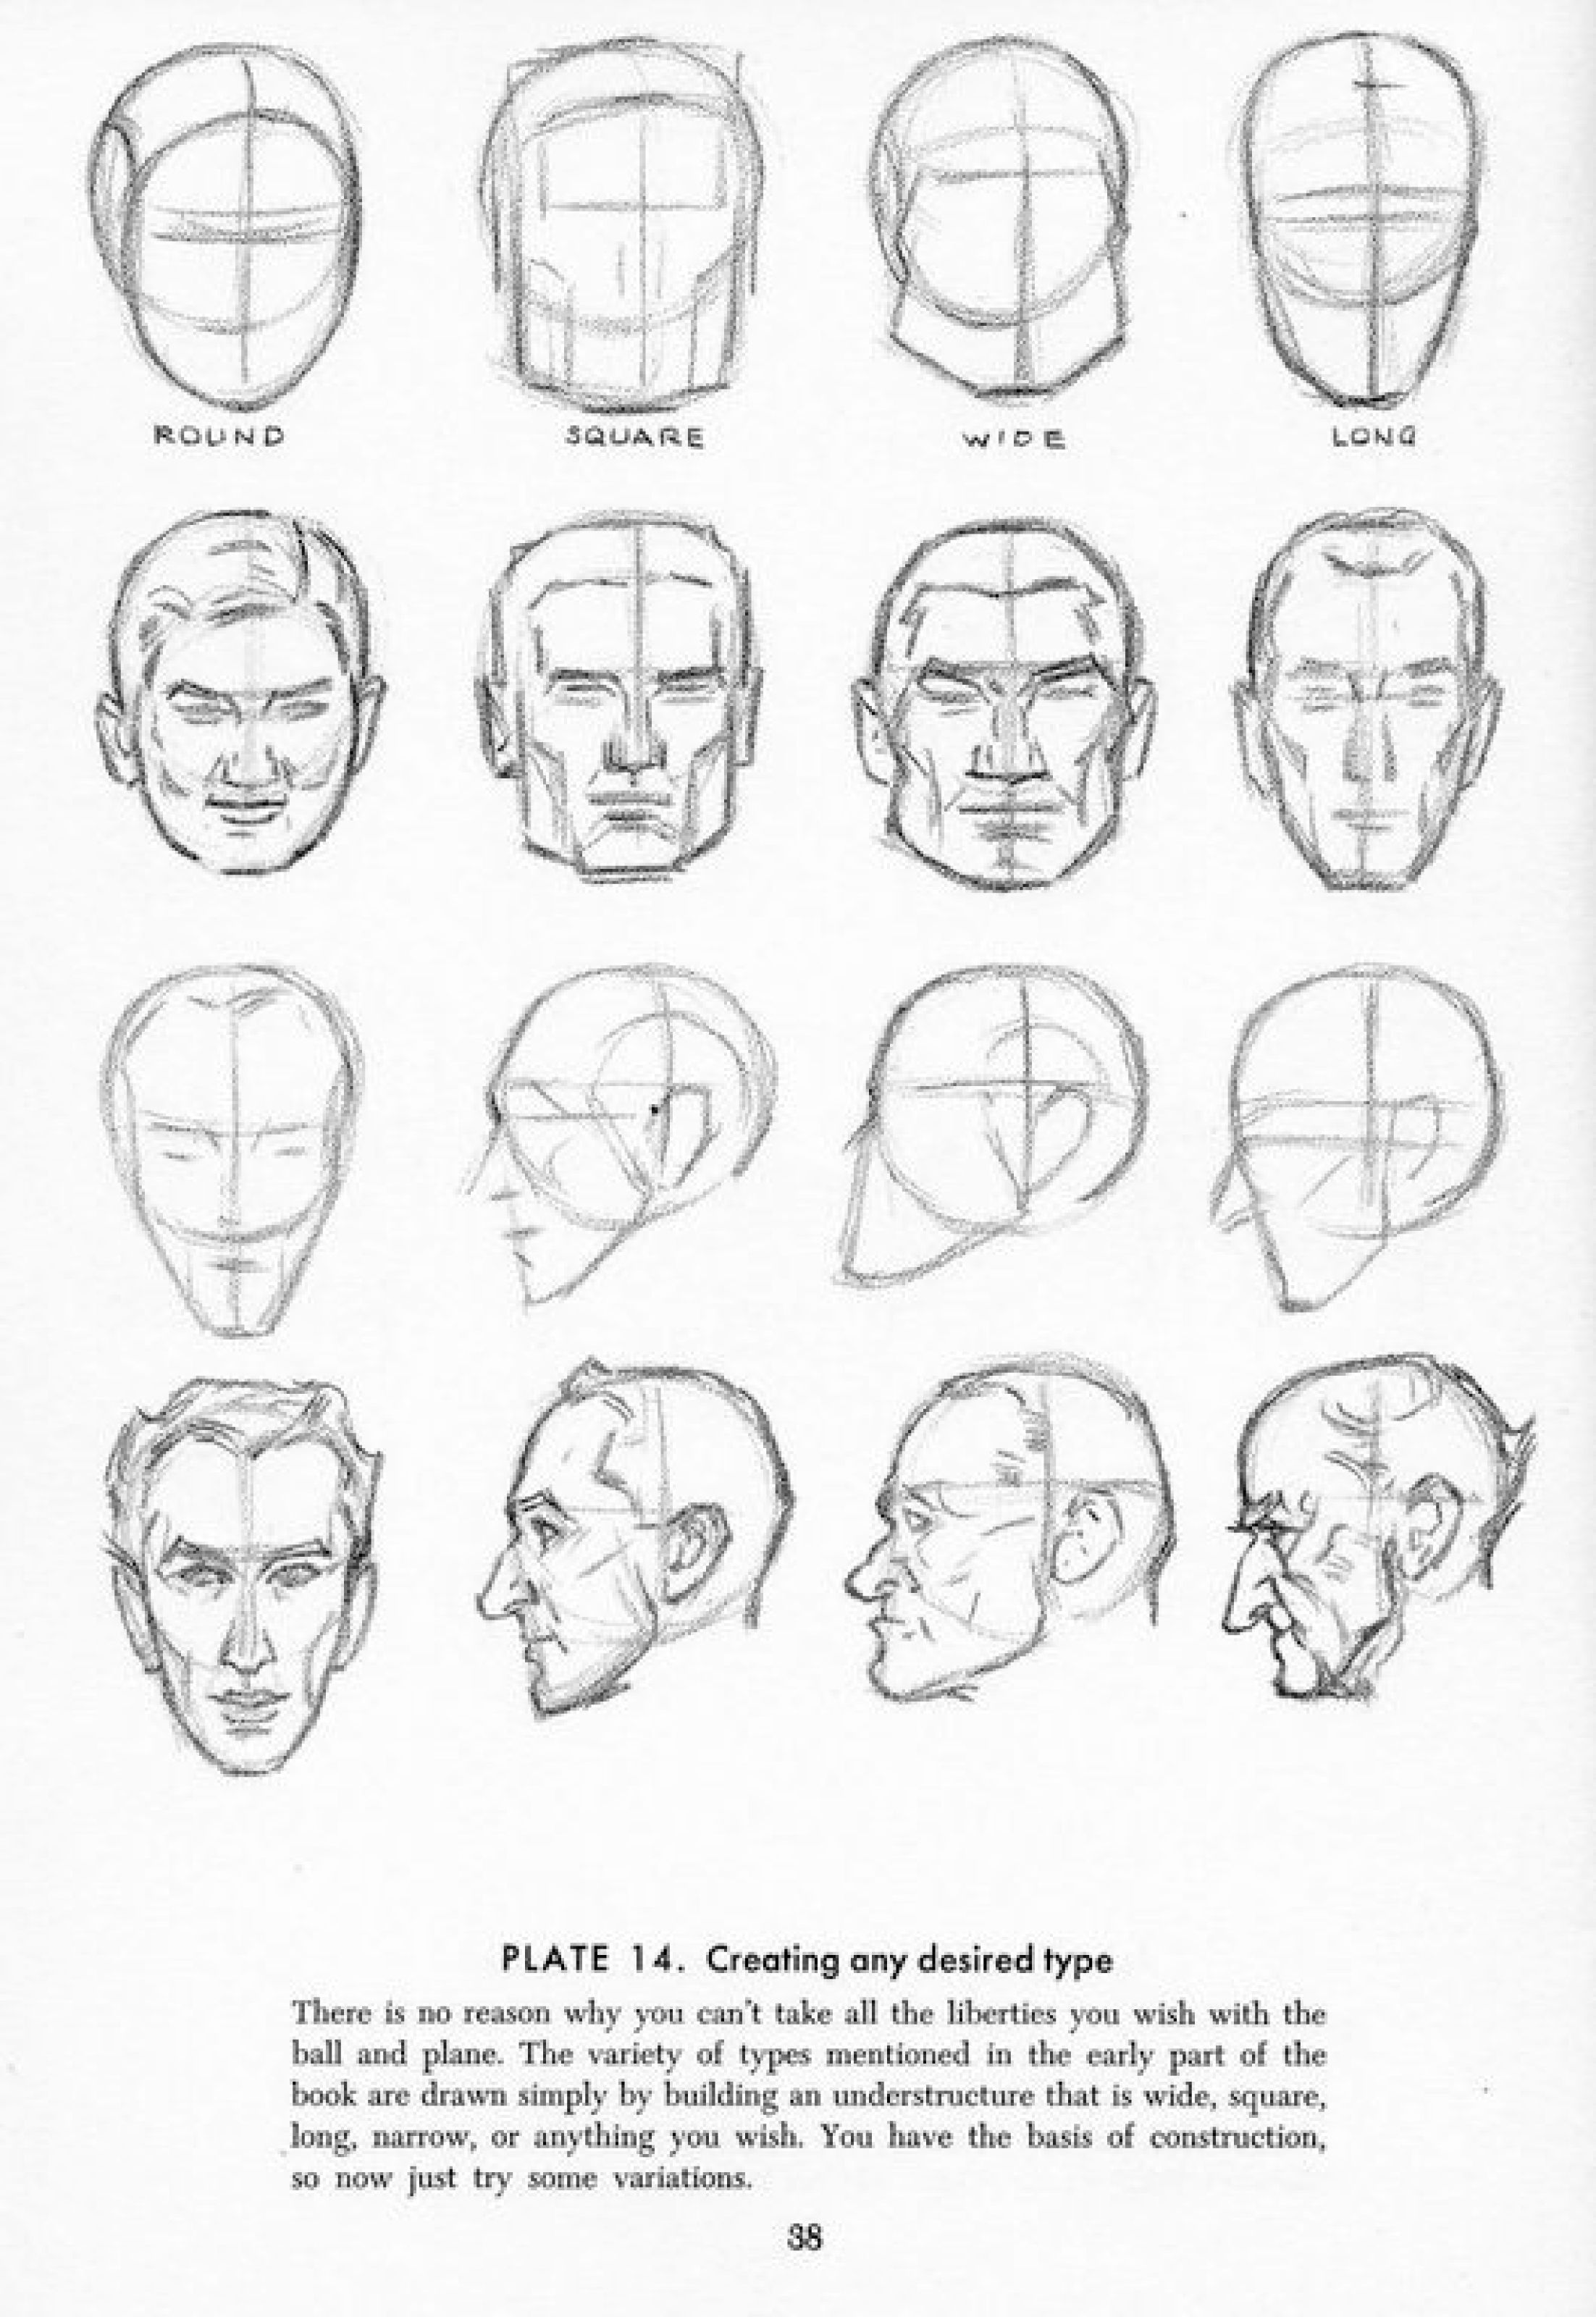 Http Illref Com Reference Illustrations Male Heads Highres Loomis Male Head Construction 08 Jpg Male Face Drawing Drawing Heads Guy Drawing